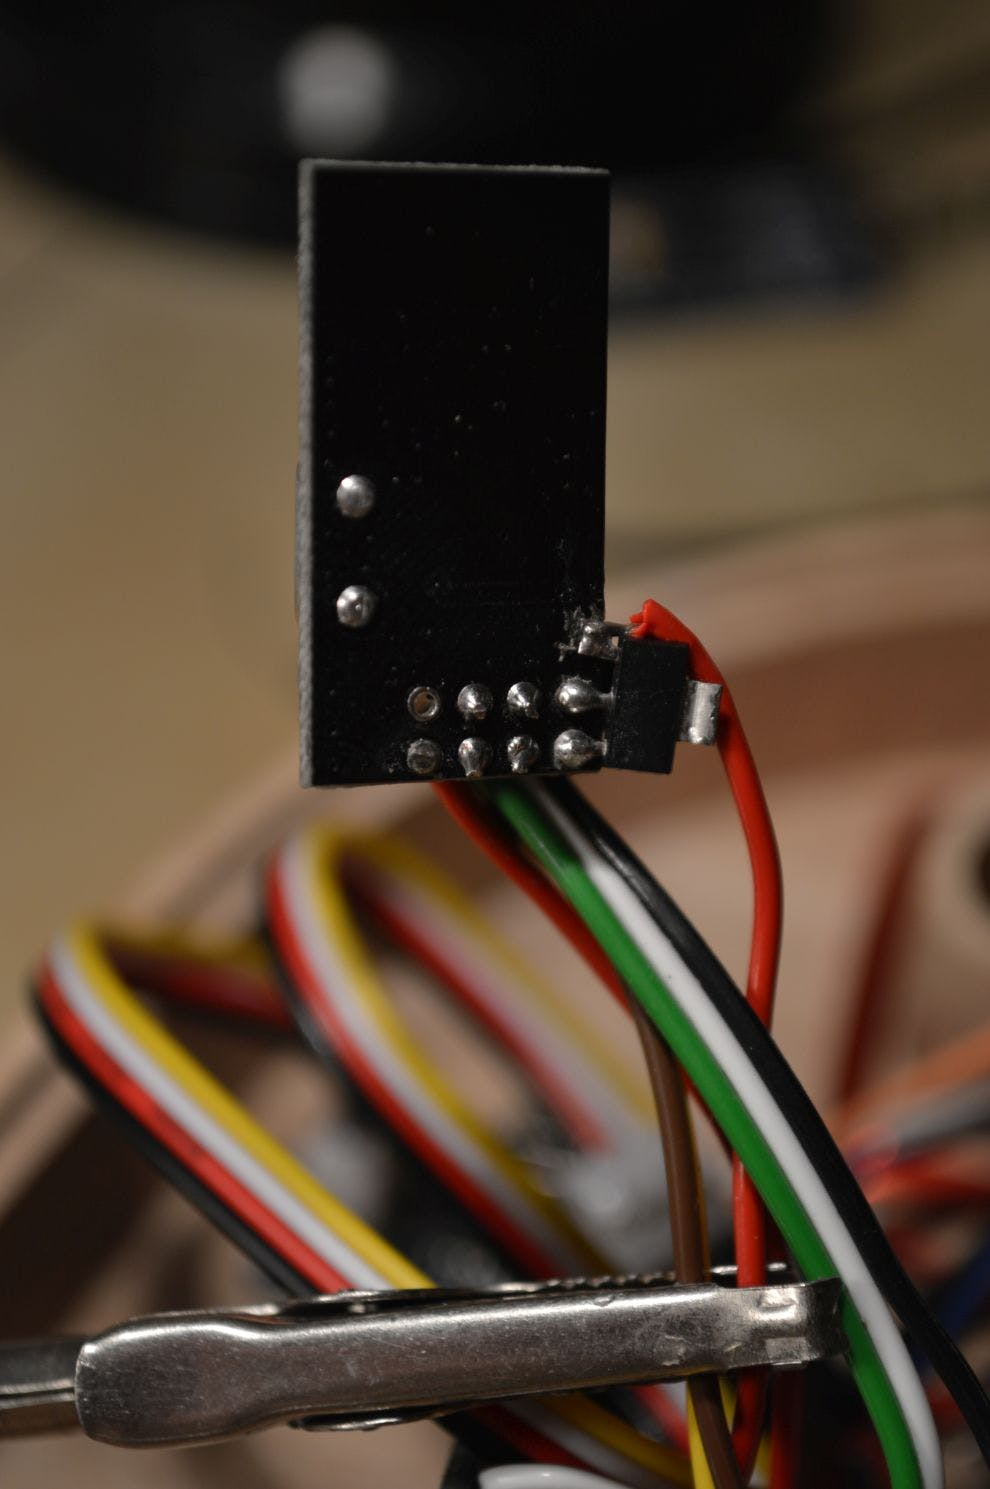 The red wire goes to the 5V supply in the circuit.